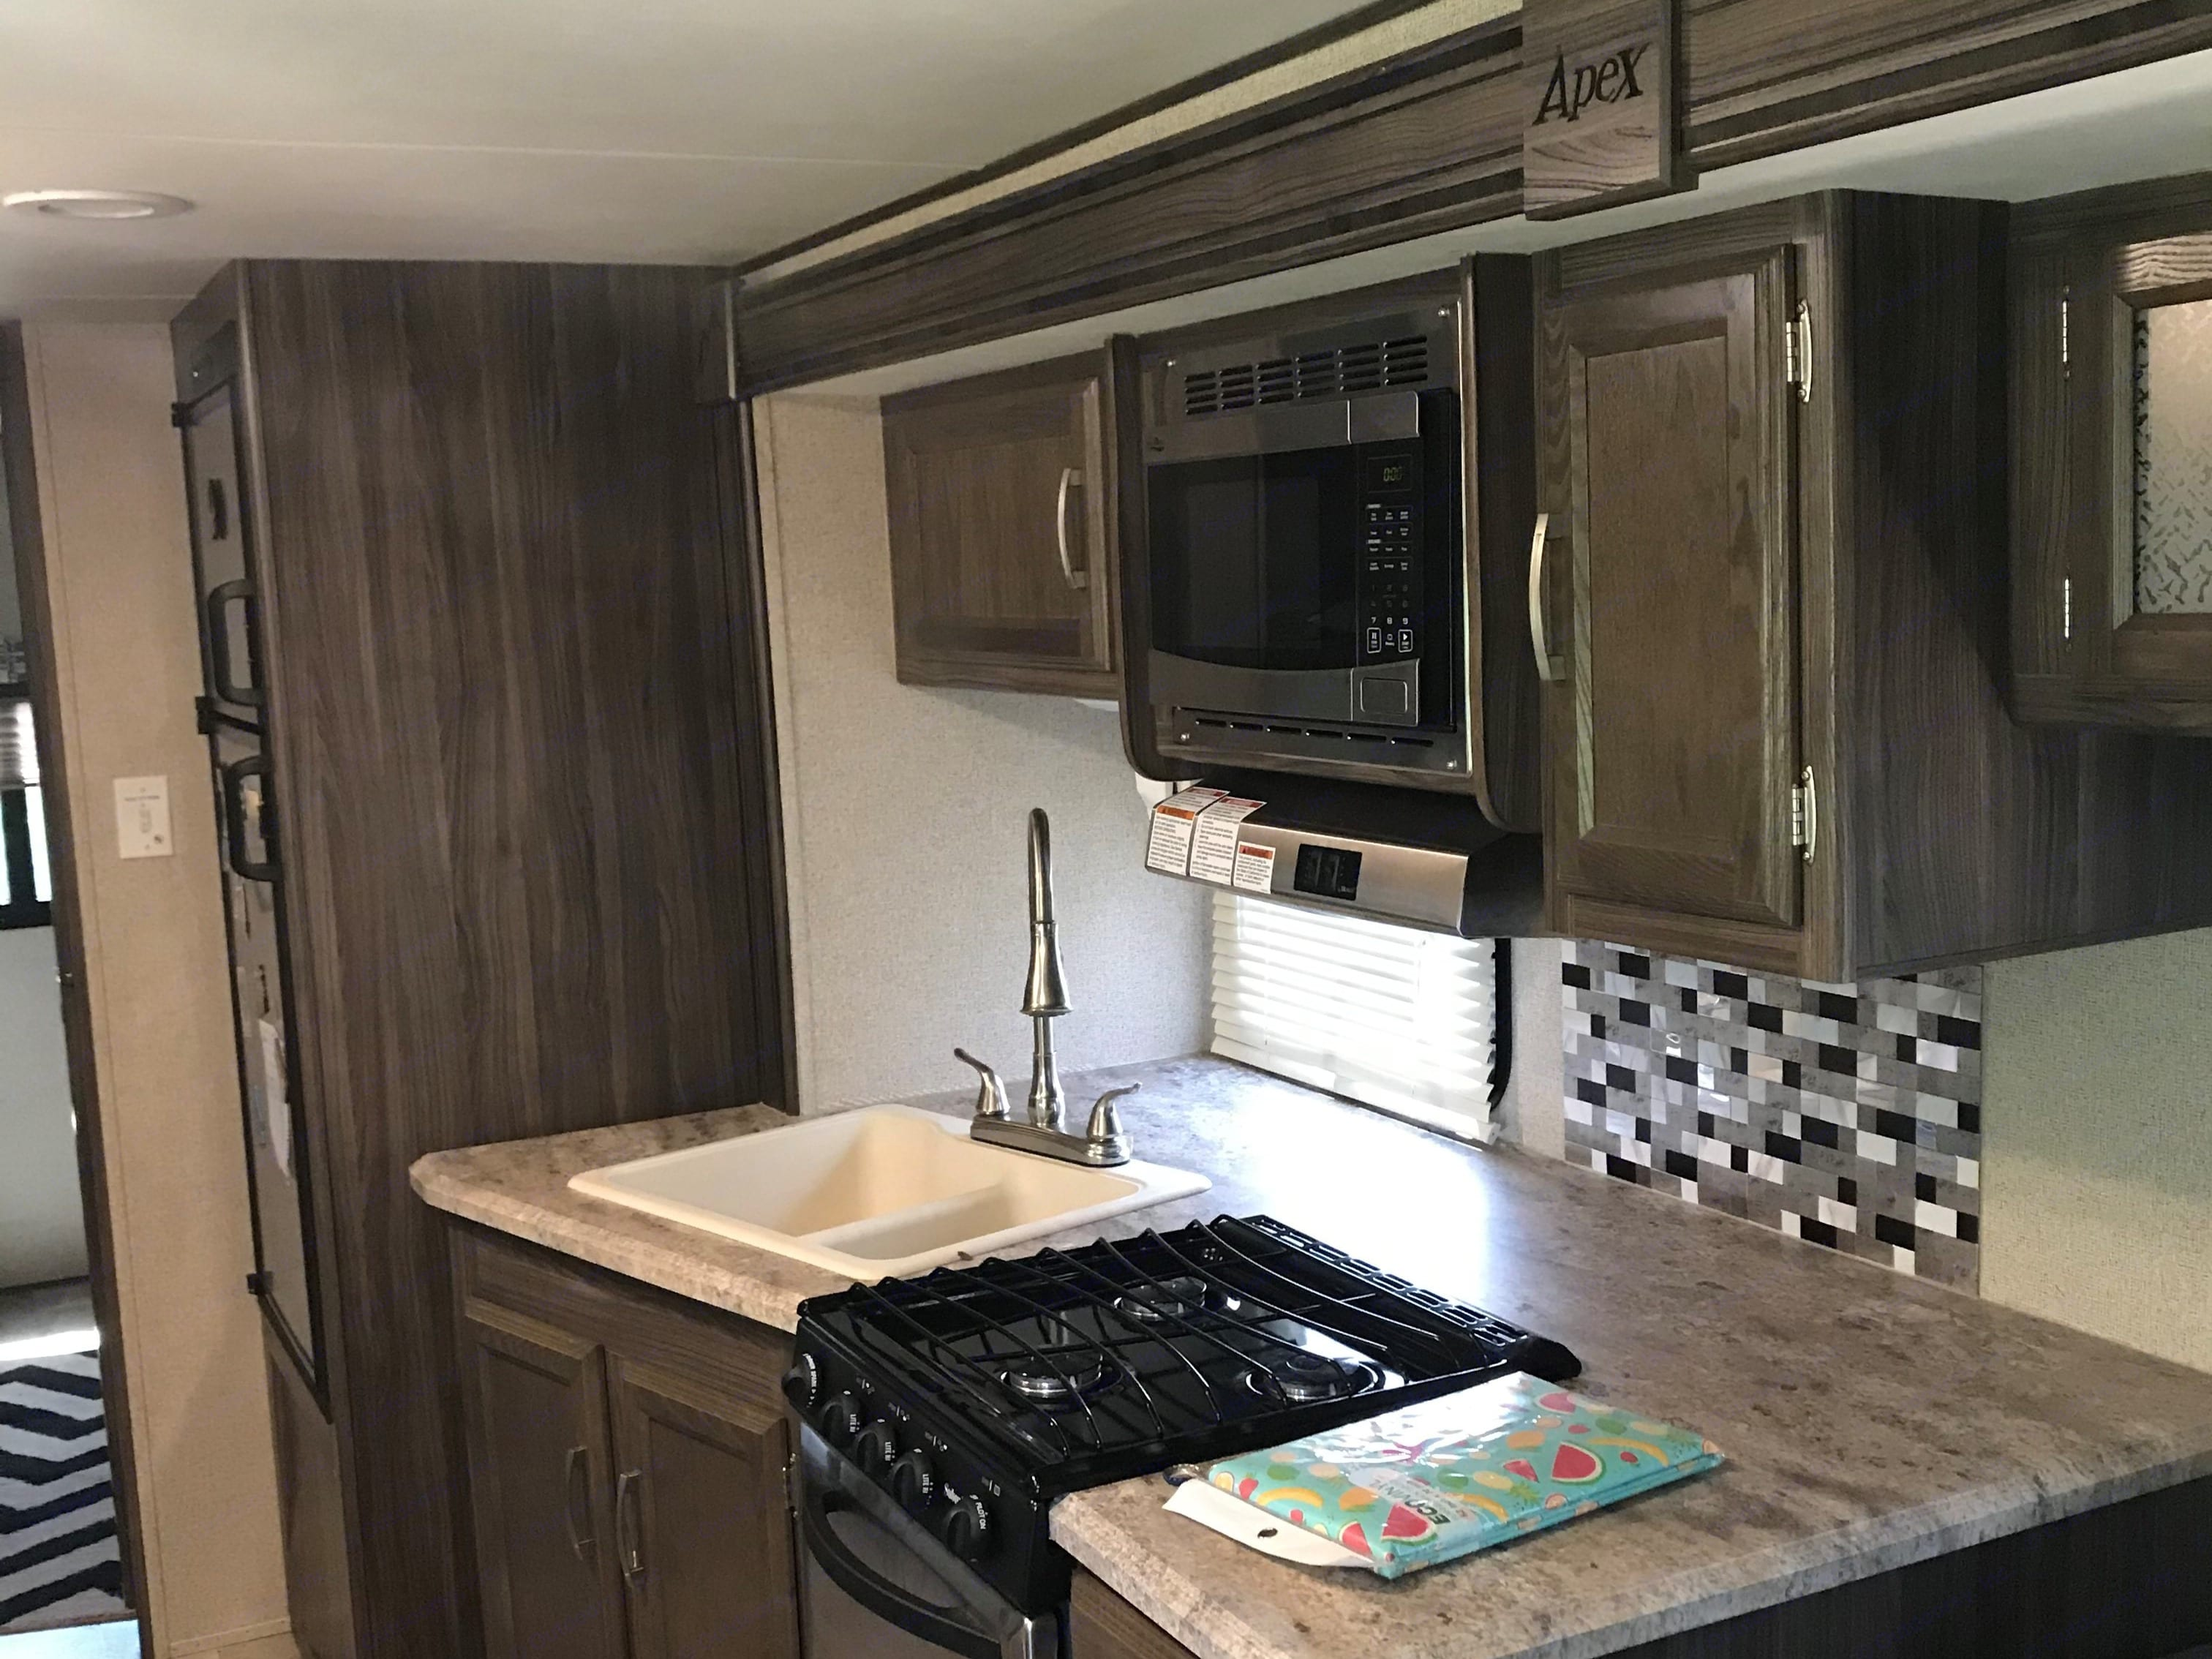 Kitchen Counter. Coachmen Apex 2017